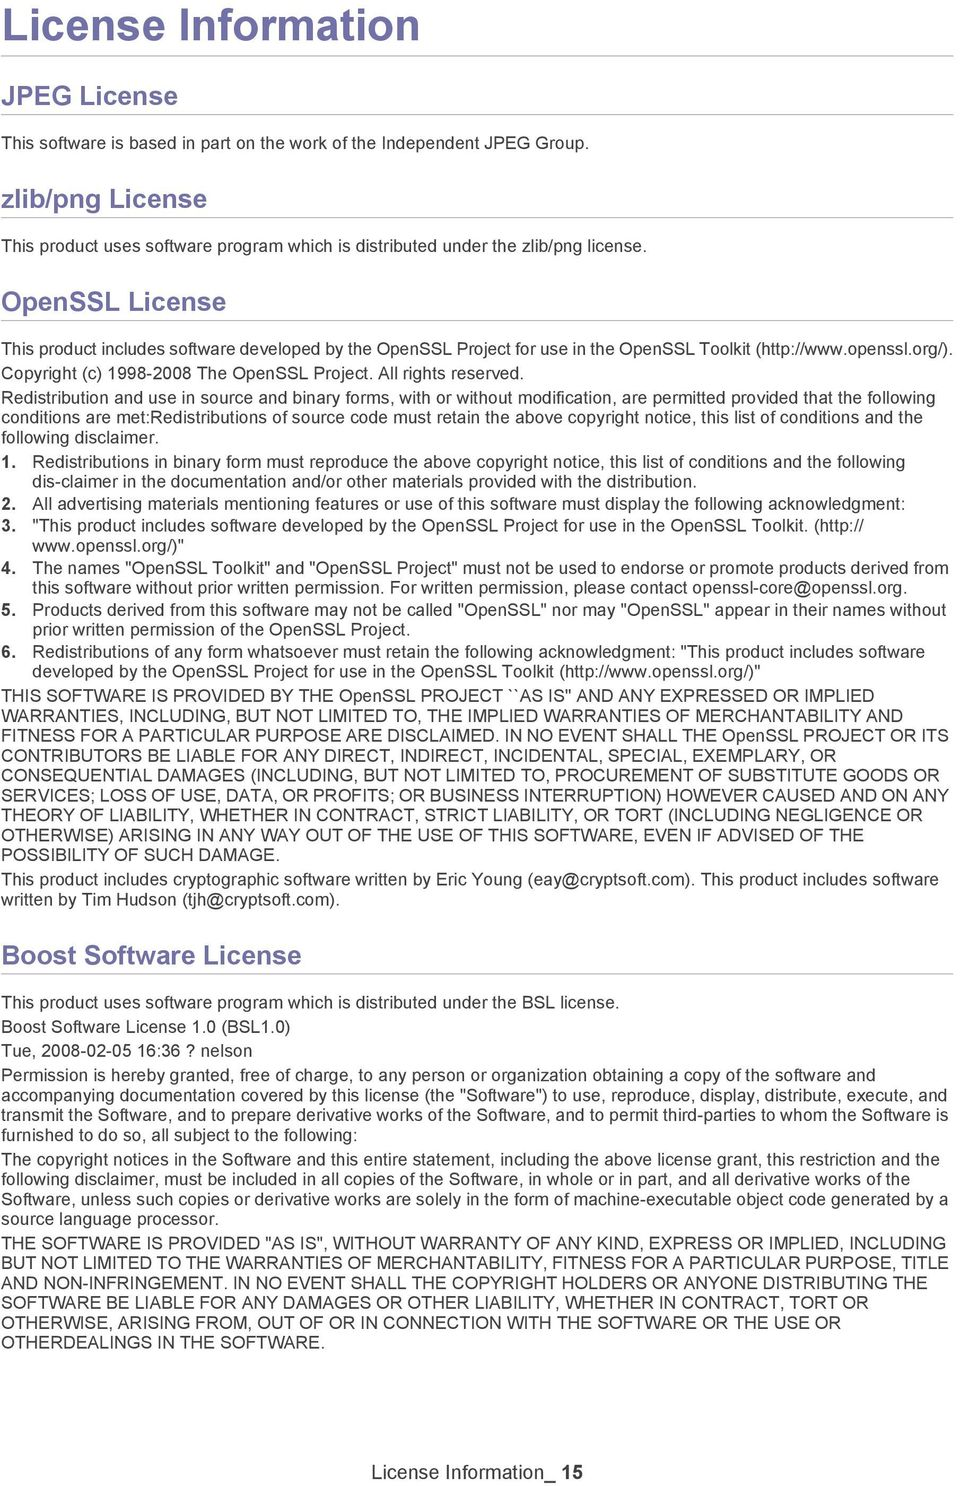 OpenSSL License This product includes software developed by the OpenSSL Project for use in the OpenSSL Toolkit (http://www.openssl.org/). Copyright (c) 1998-2008 The OpenSSL Project.